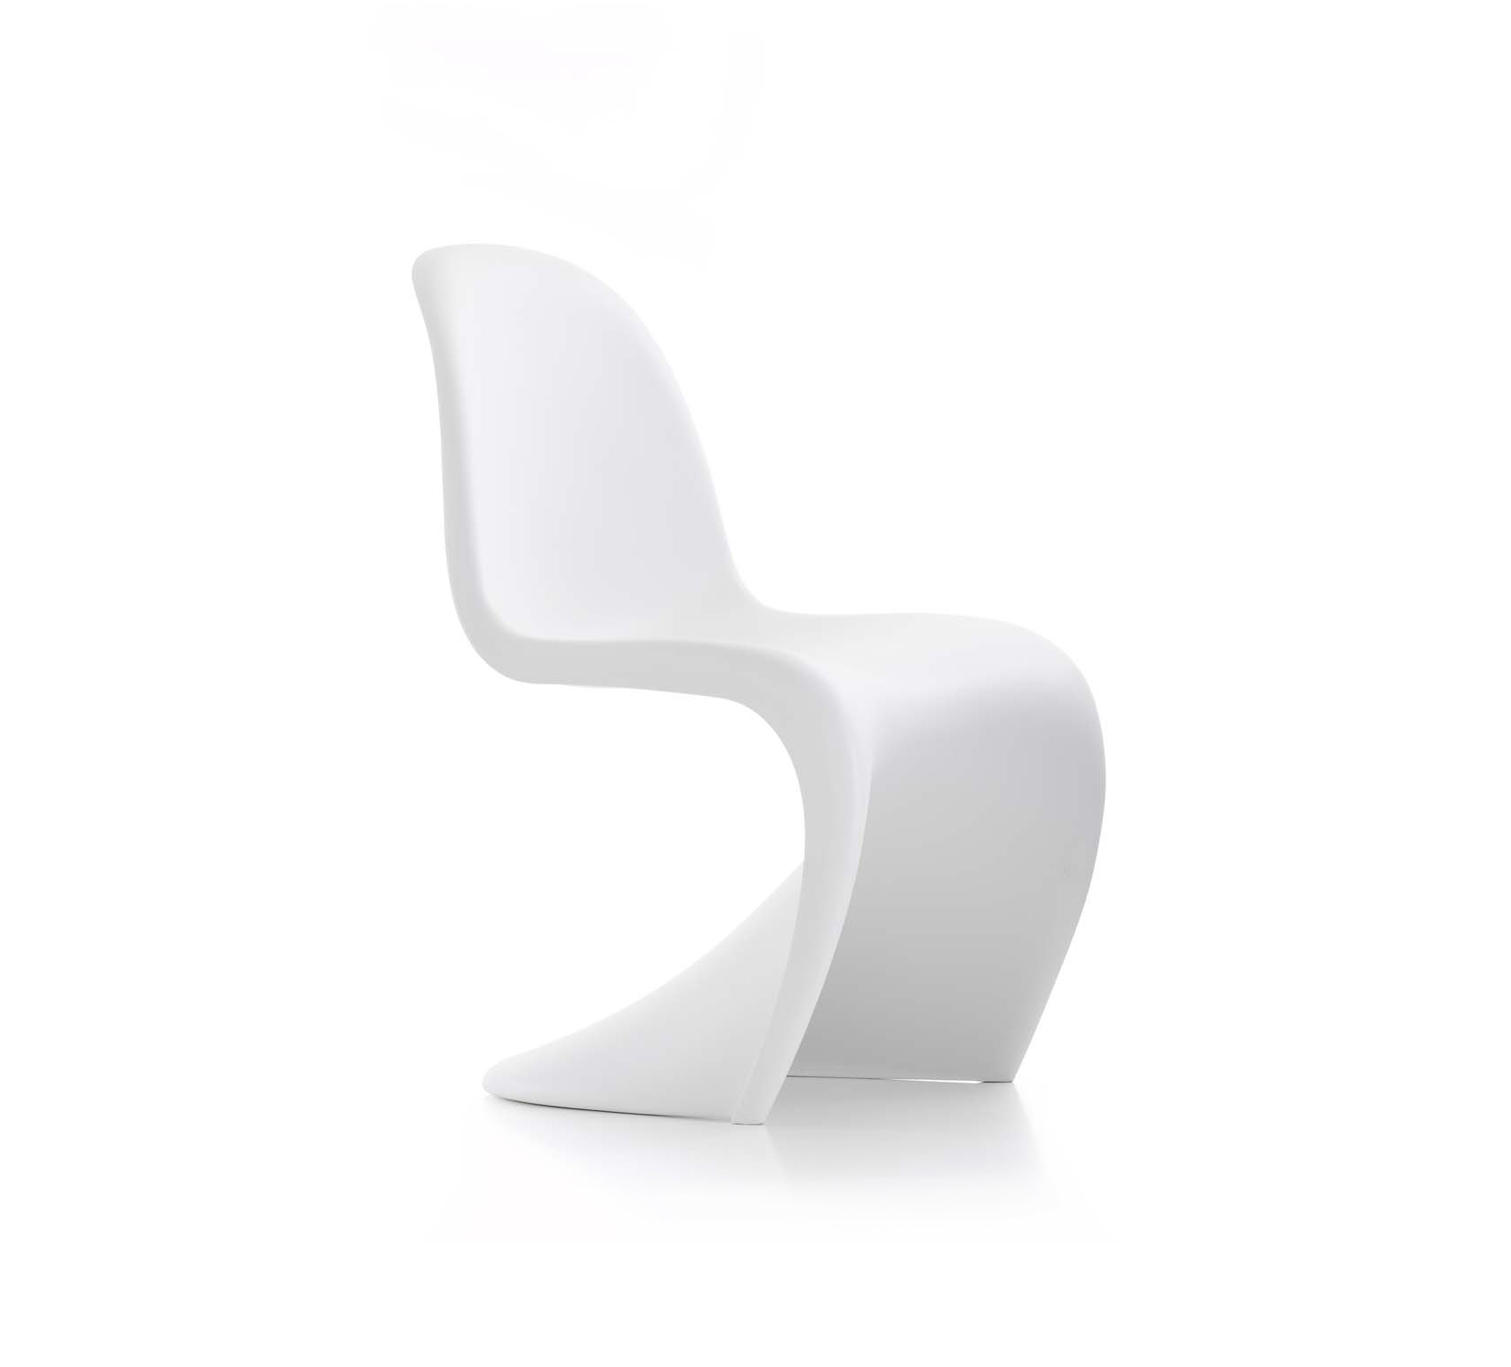 VitraArchitonic Chair De Panton Panton Chaises De Chair Panton Chaises VitraArchitonic byf6vIgY7m